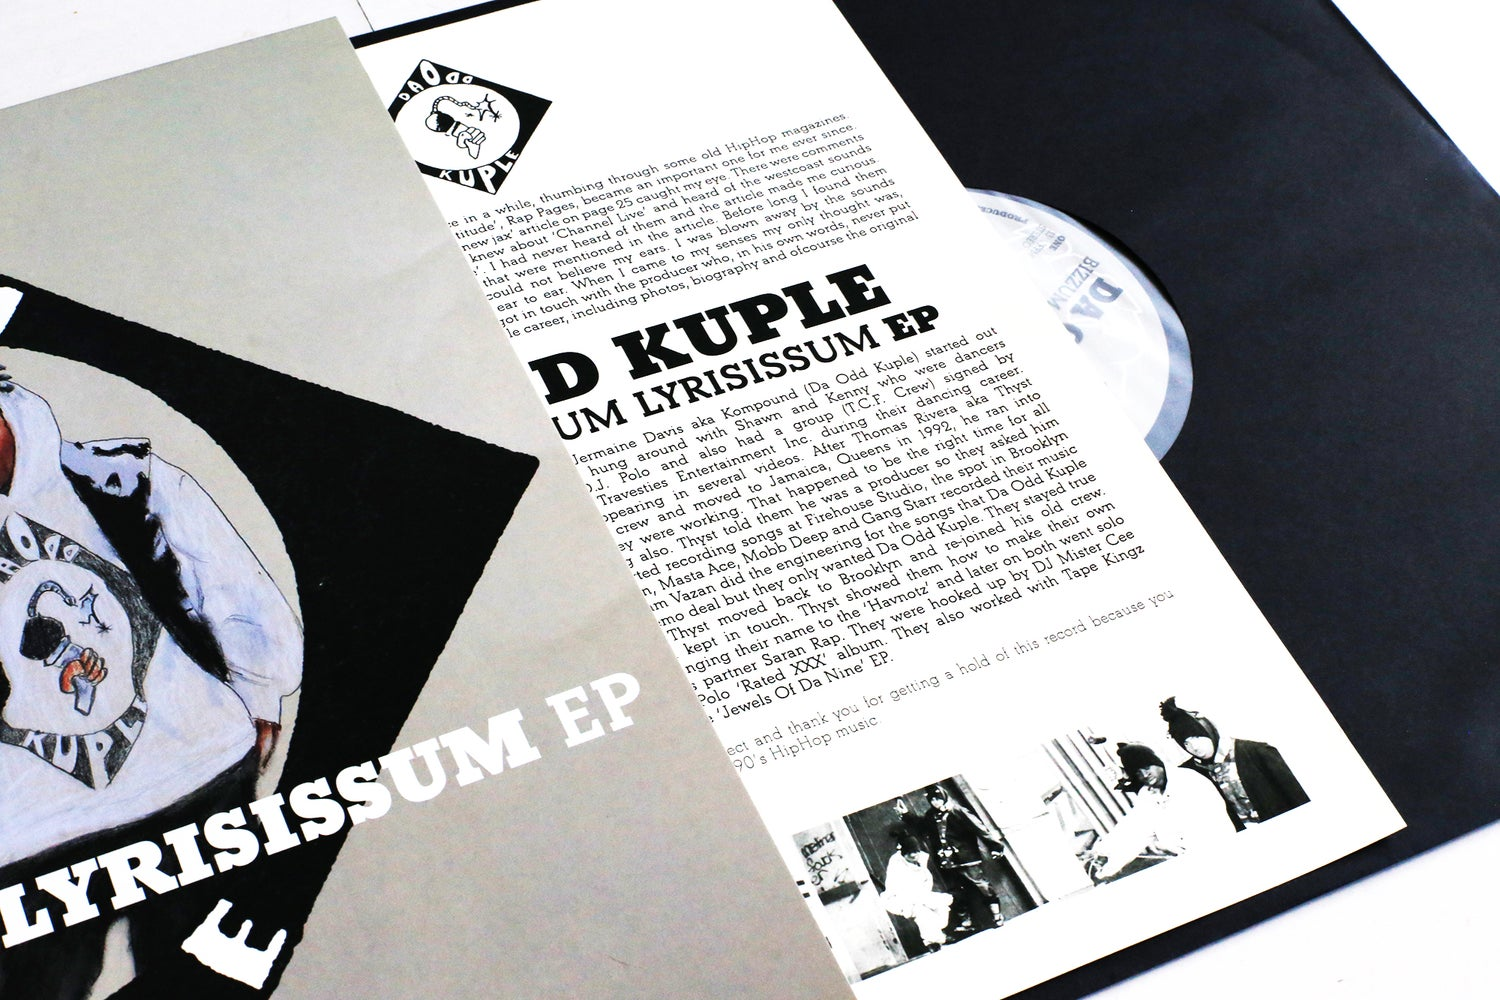 Image of Da Odd Kuple - Bizzum Wit Sum Lyrisissum EP